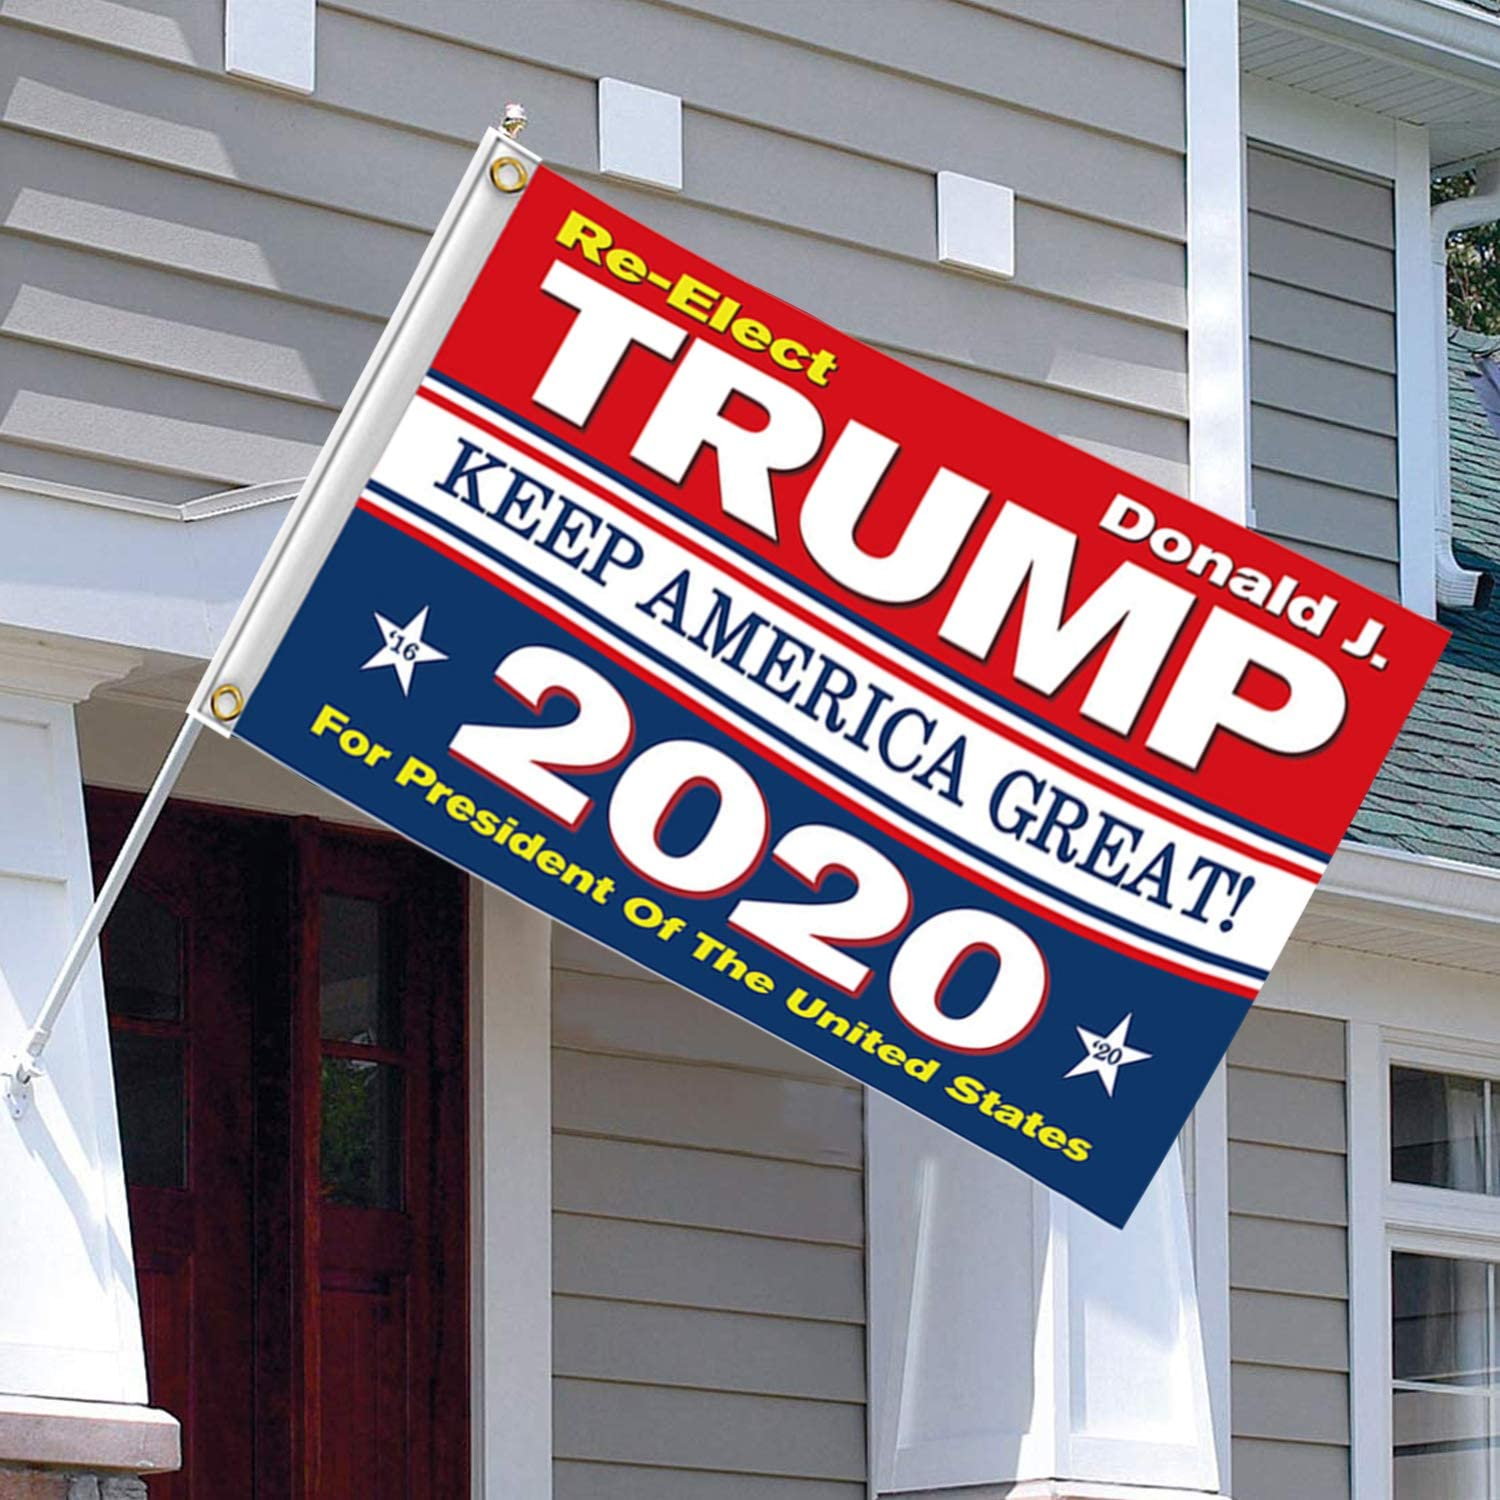 Kithwaro 4 Pieces Donald Trump 2020 Flags, President Donald Trump Tank Flag 2020 Keep America Great Flag with Grommets for US Election Patriotic Outdoor Indoor Decoration Banner, 3x5 Feet : Garden & Outdoor